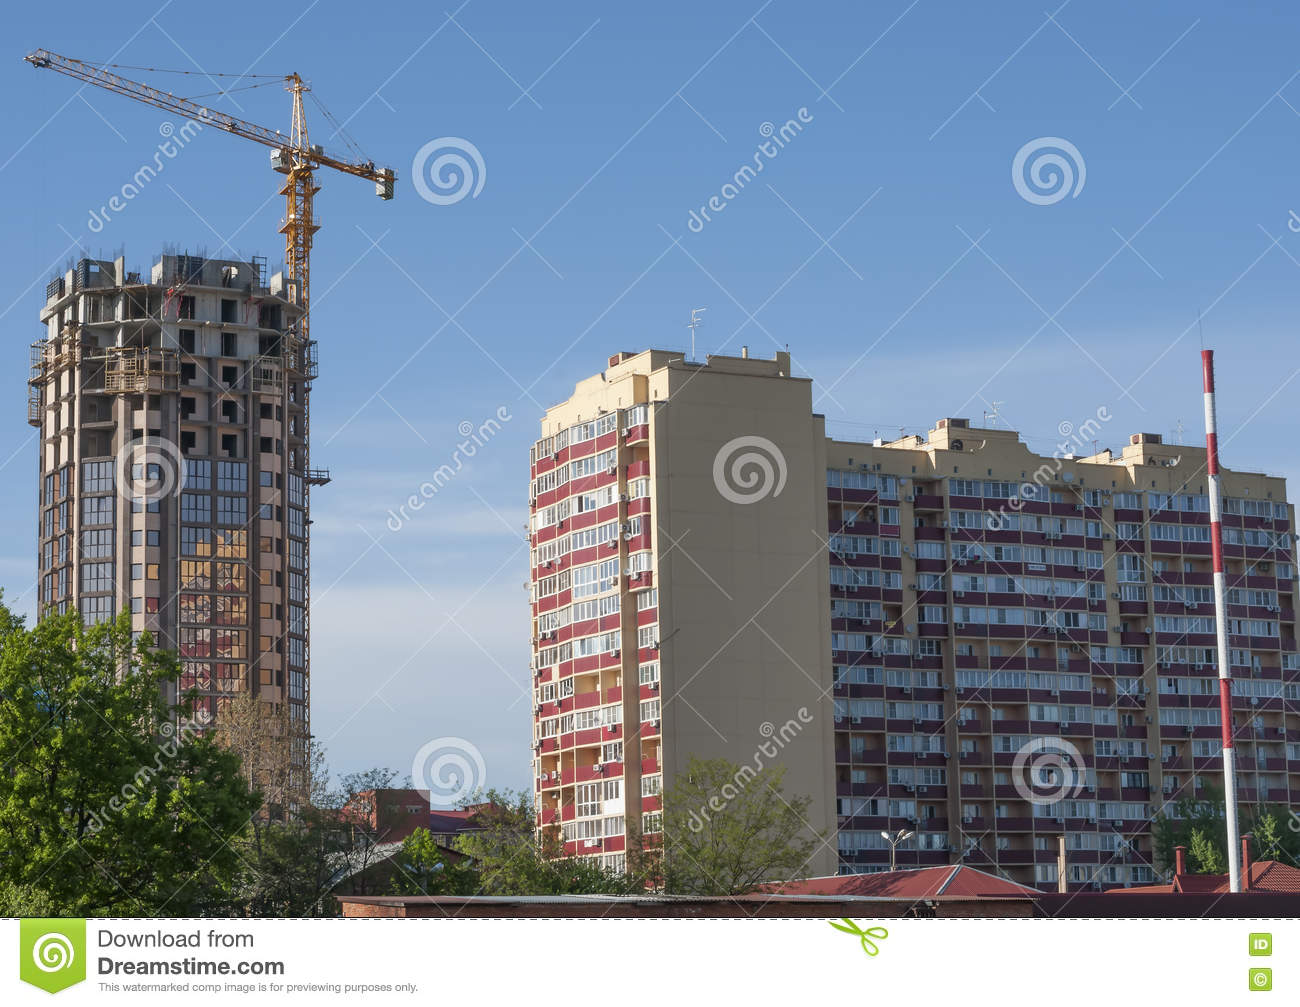 wo Buildings Of Different rchitectural Styles Stock Photo ... - ^